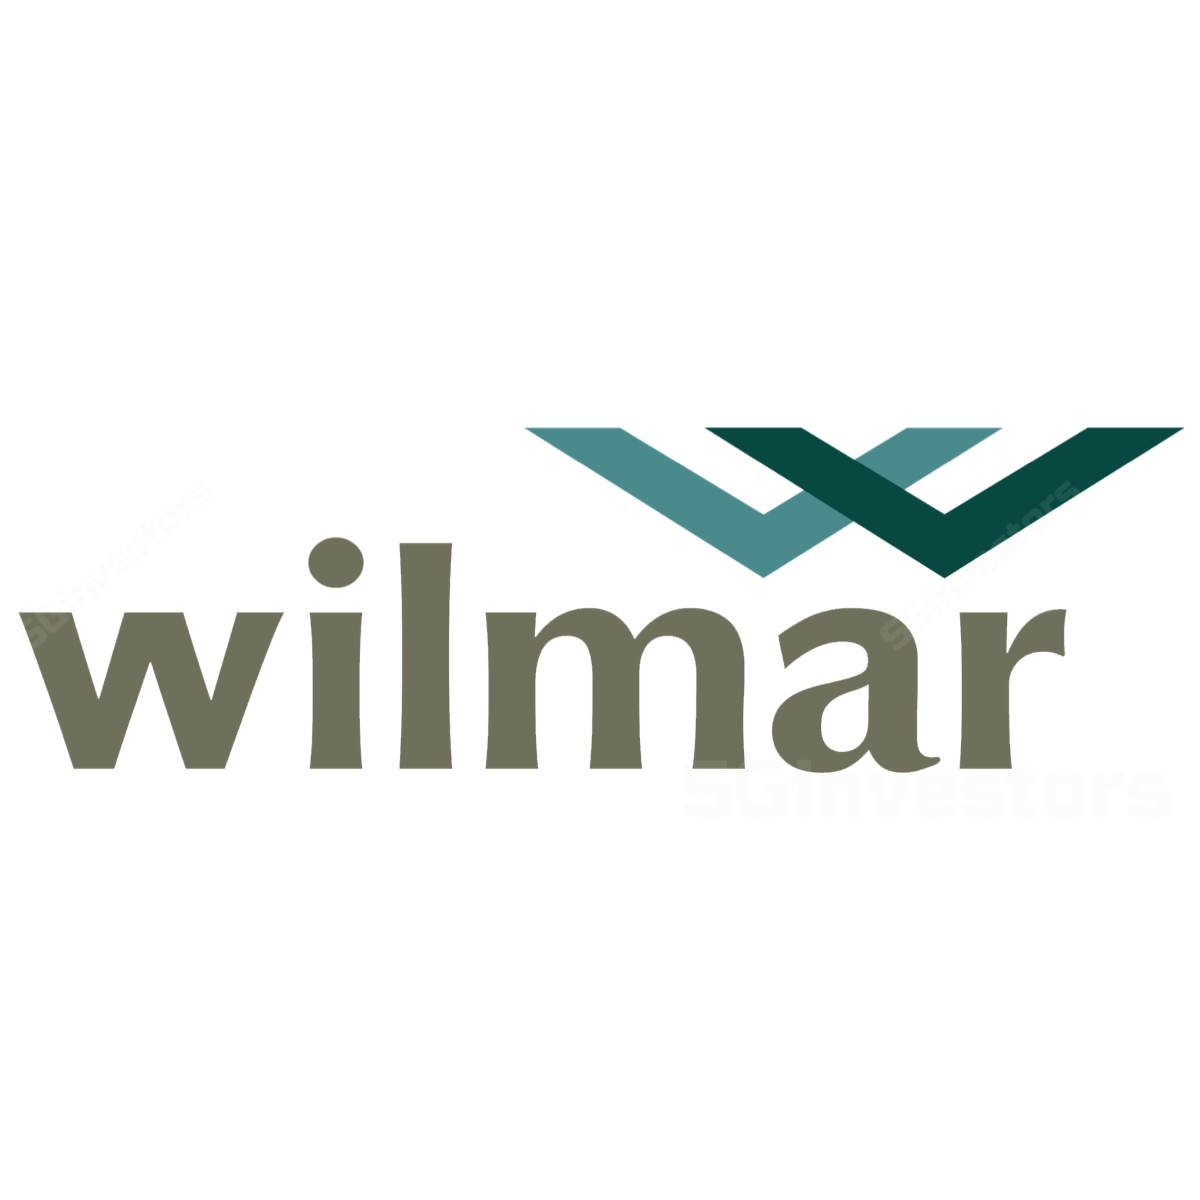 Wilmar International - DBS Group Research 2018-08-14: Decent Earnings Performance